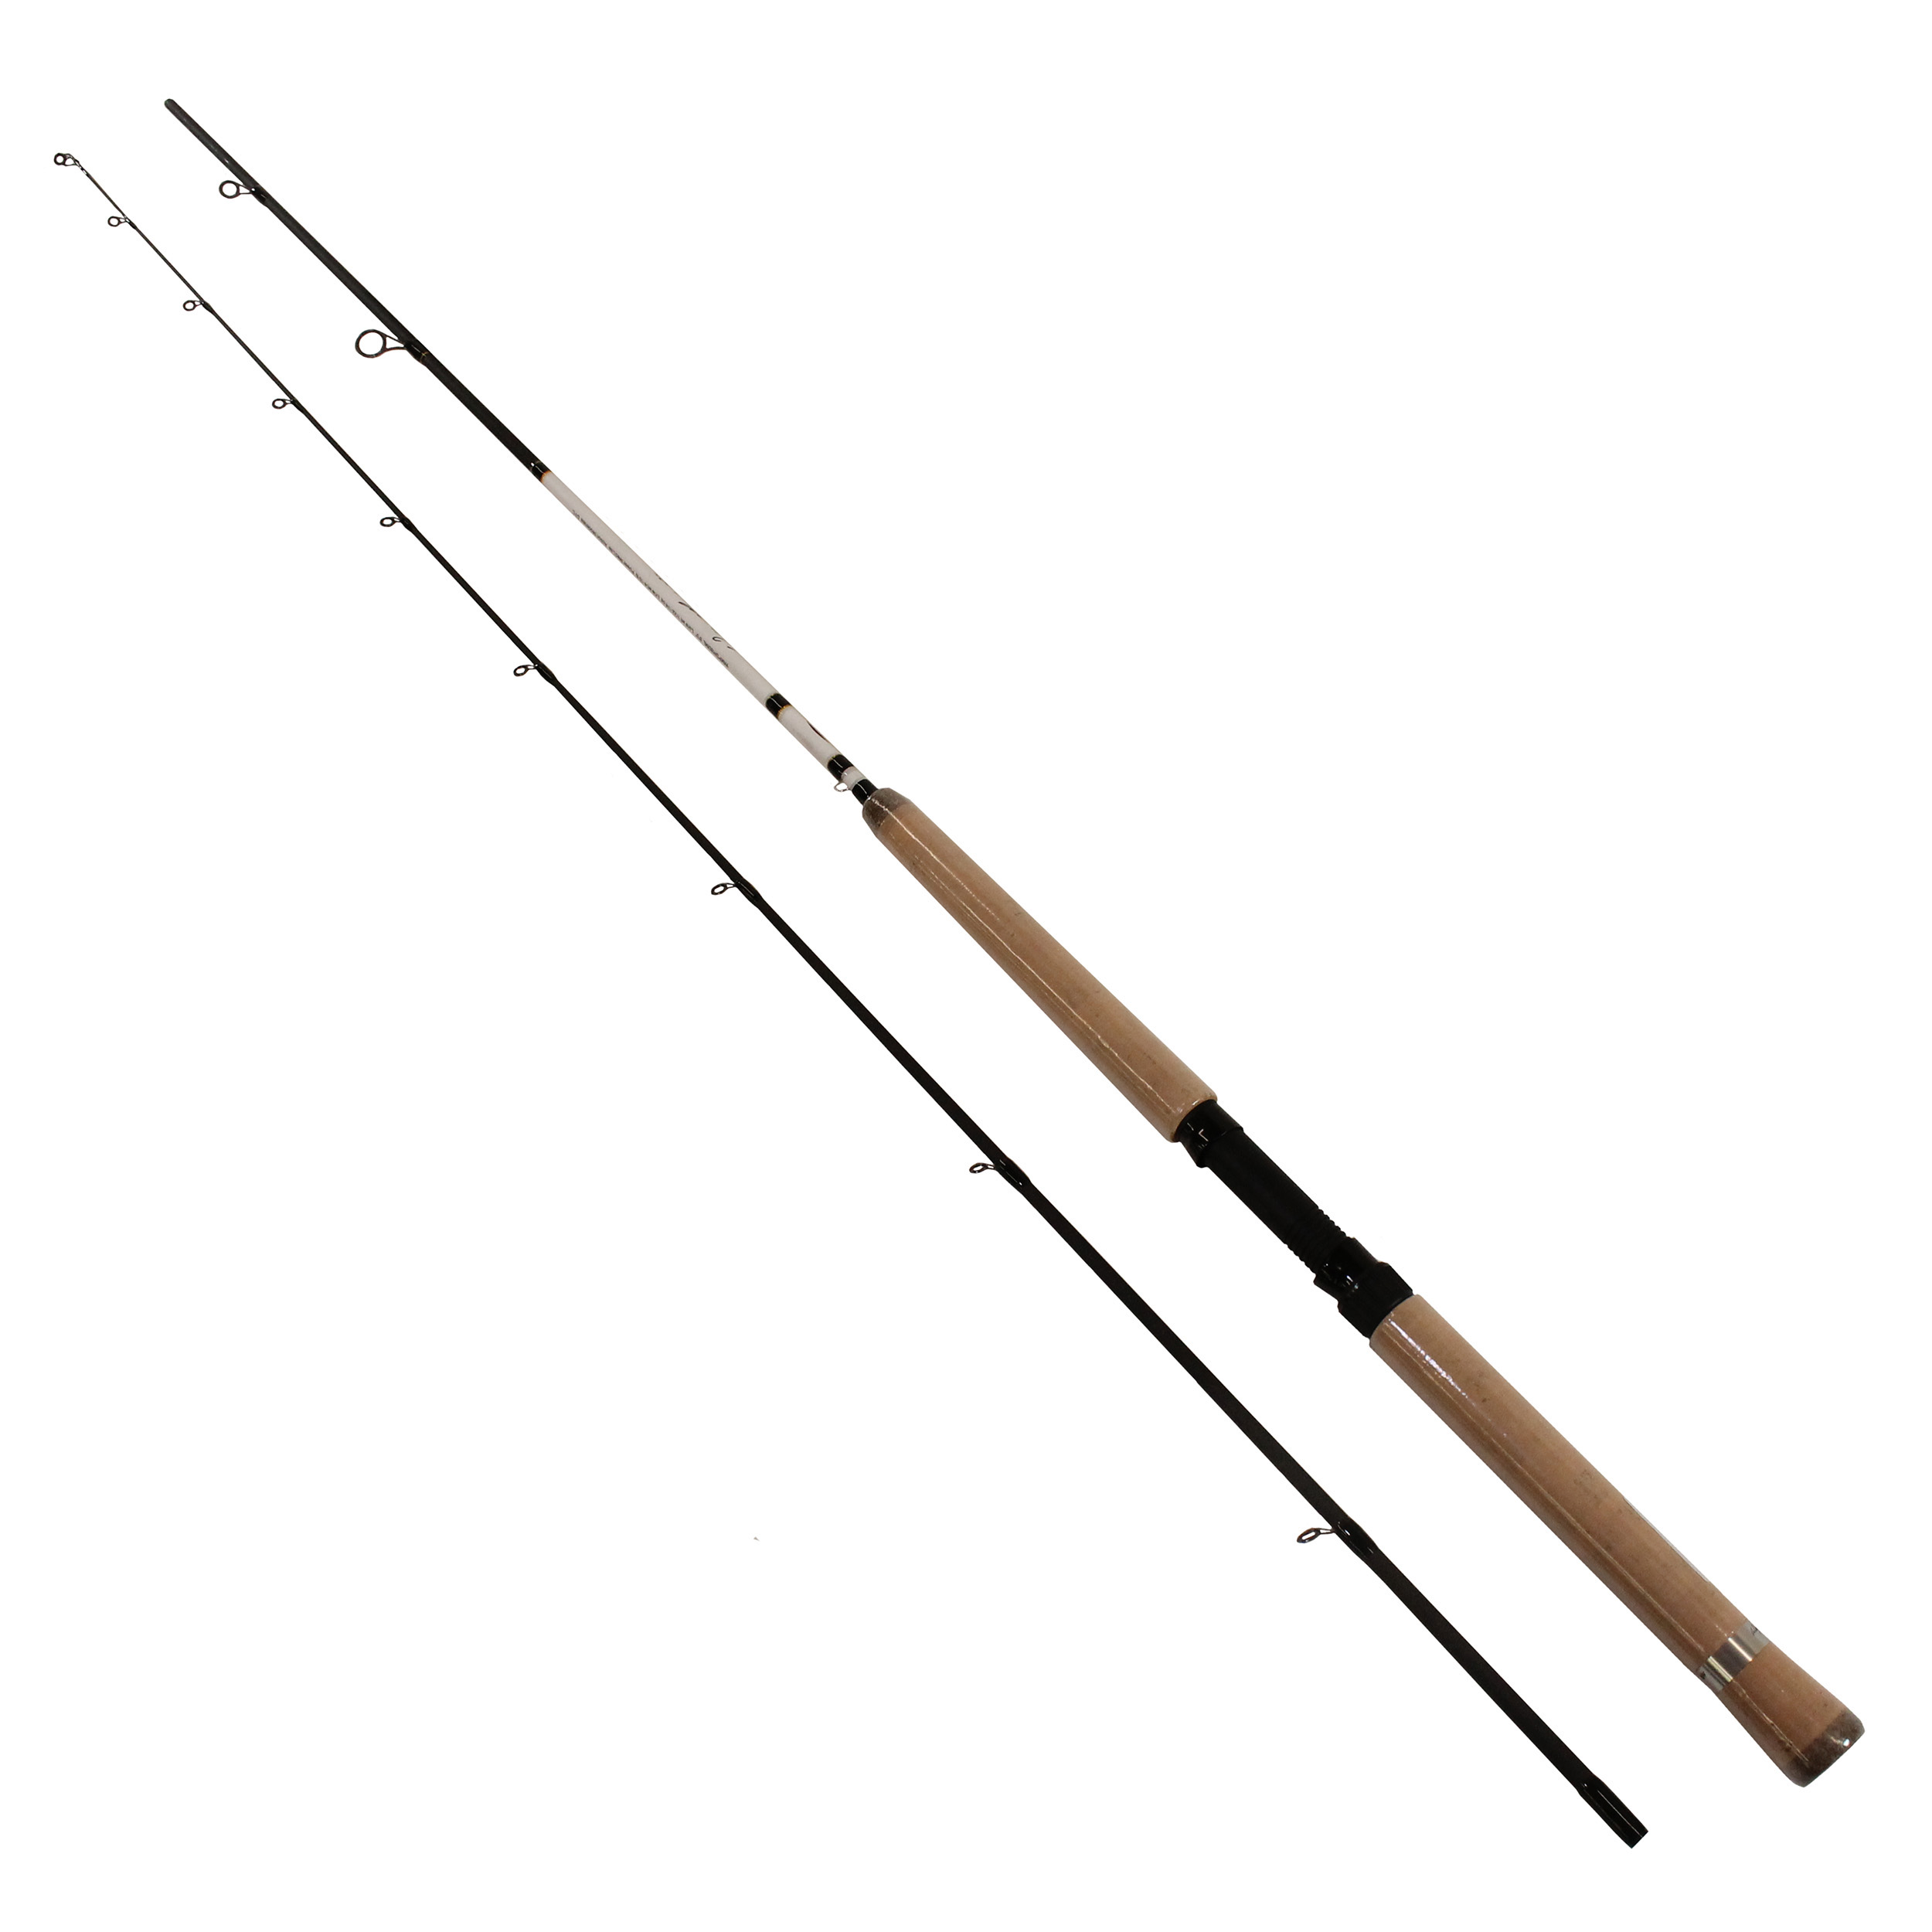 Lews Fishing Wally Marshall Pro Rod 10', 2 Piece, Medium/Light Power, Medium...